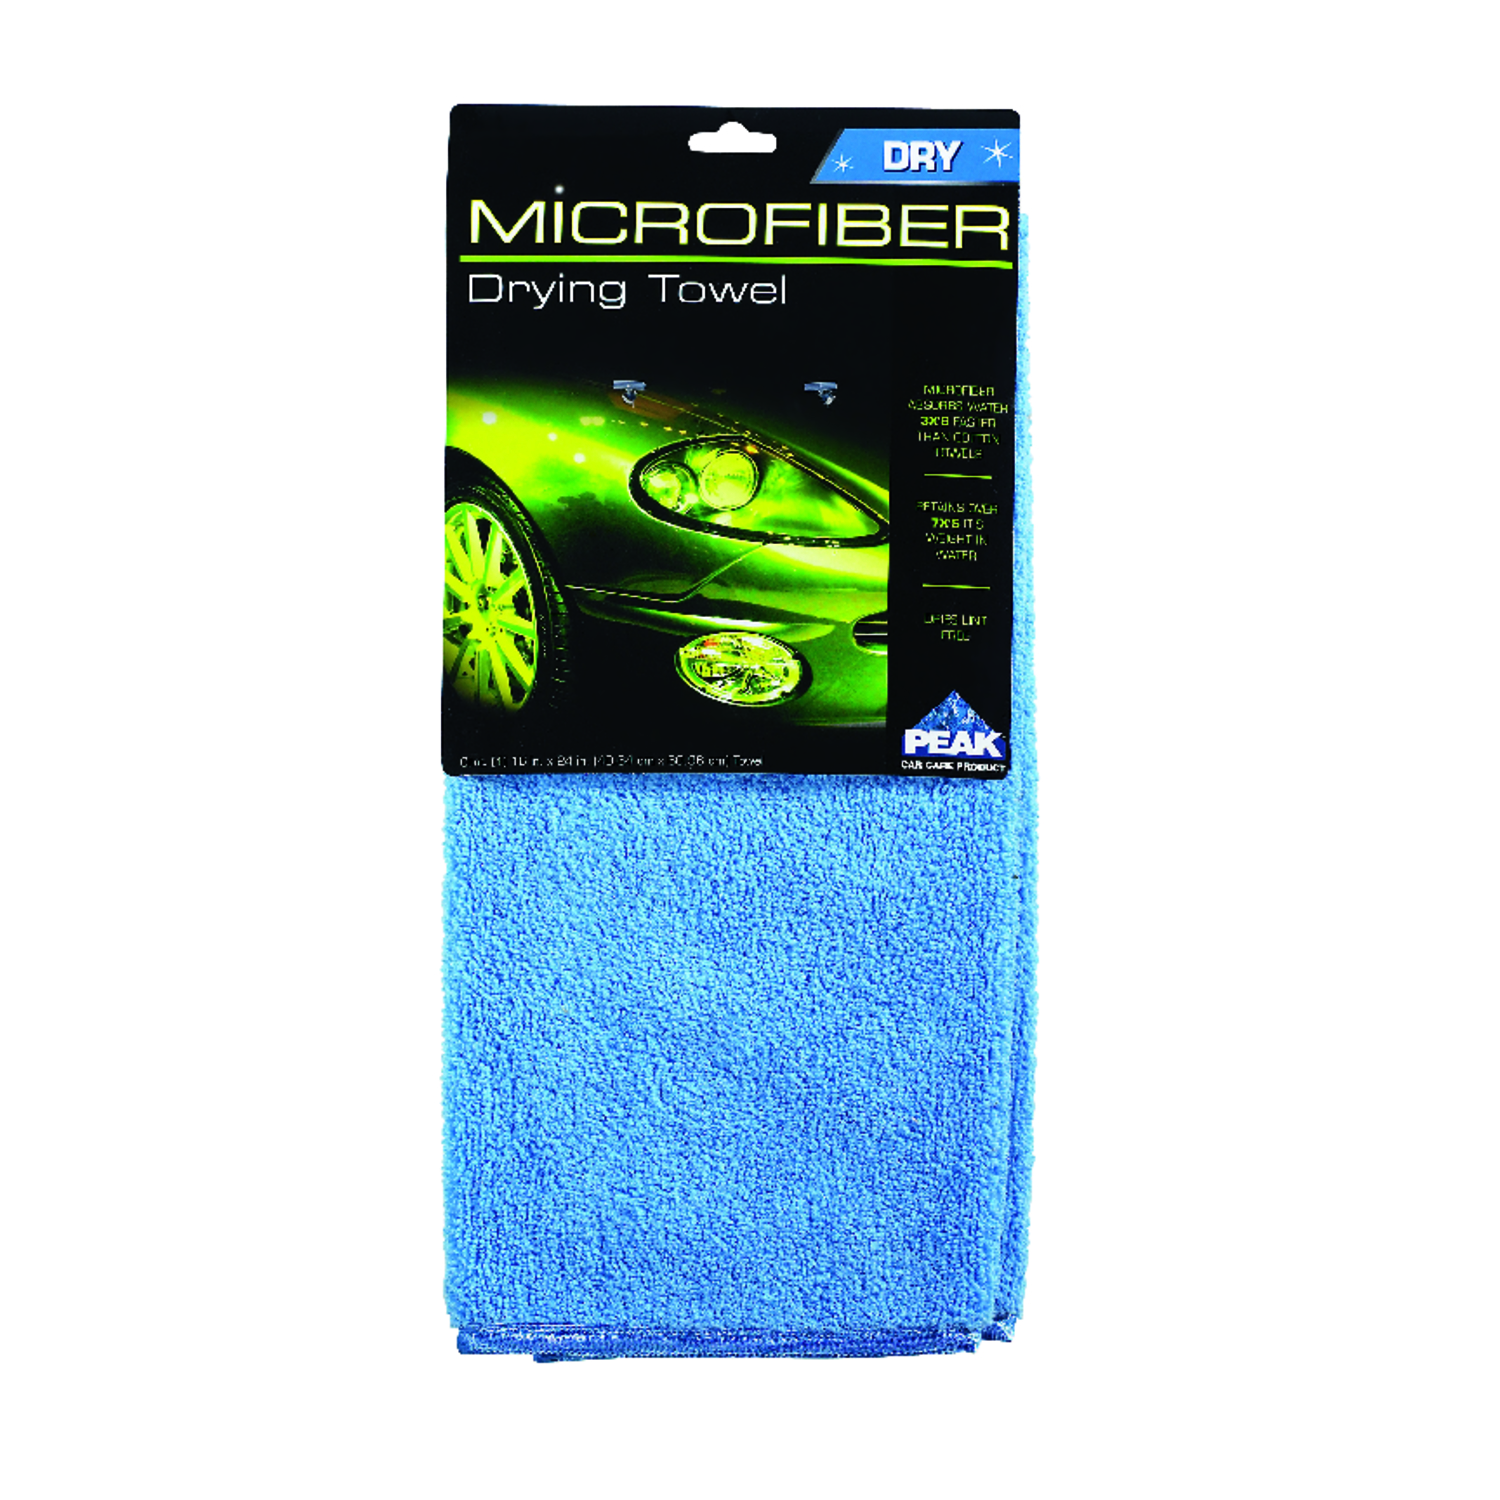 Peak  Cotton/Polyester  Drying Towel  24 in. L x 16 in. W 1 pk